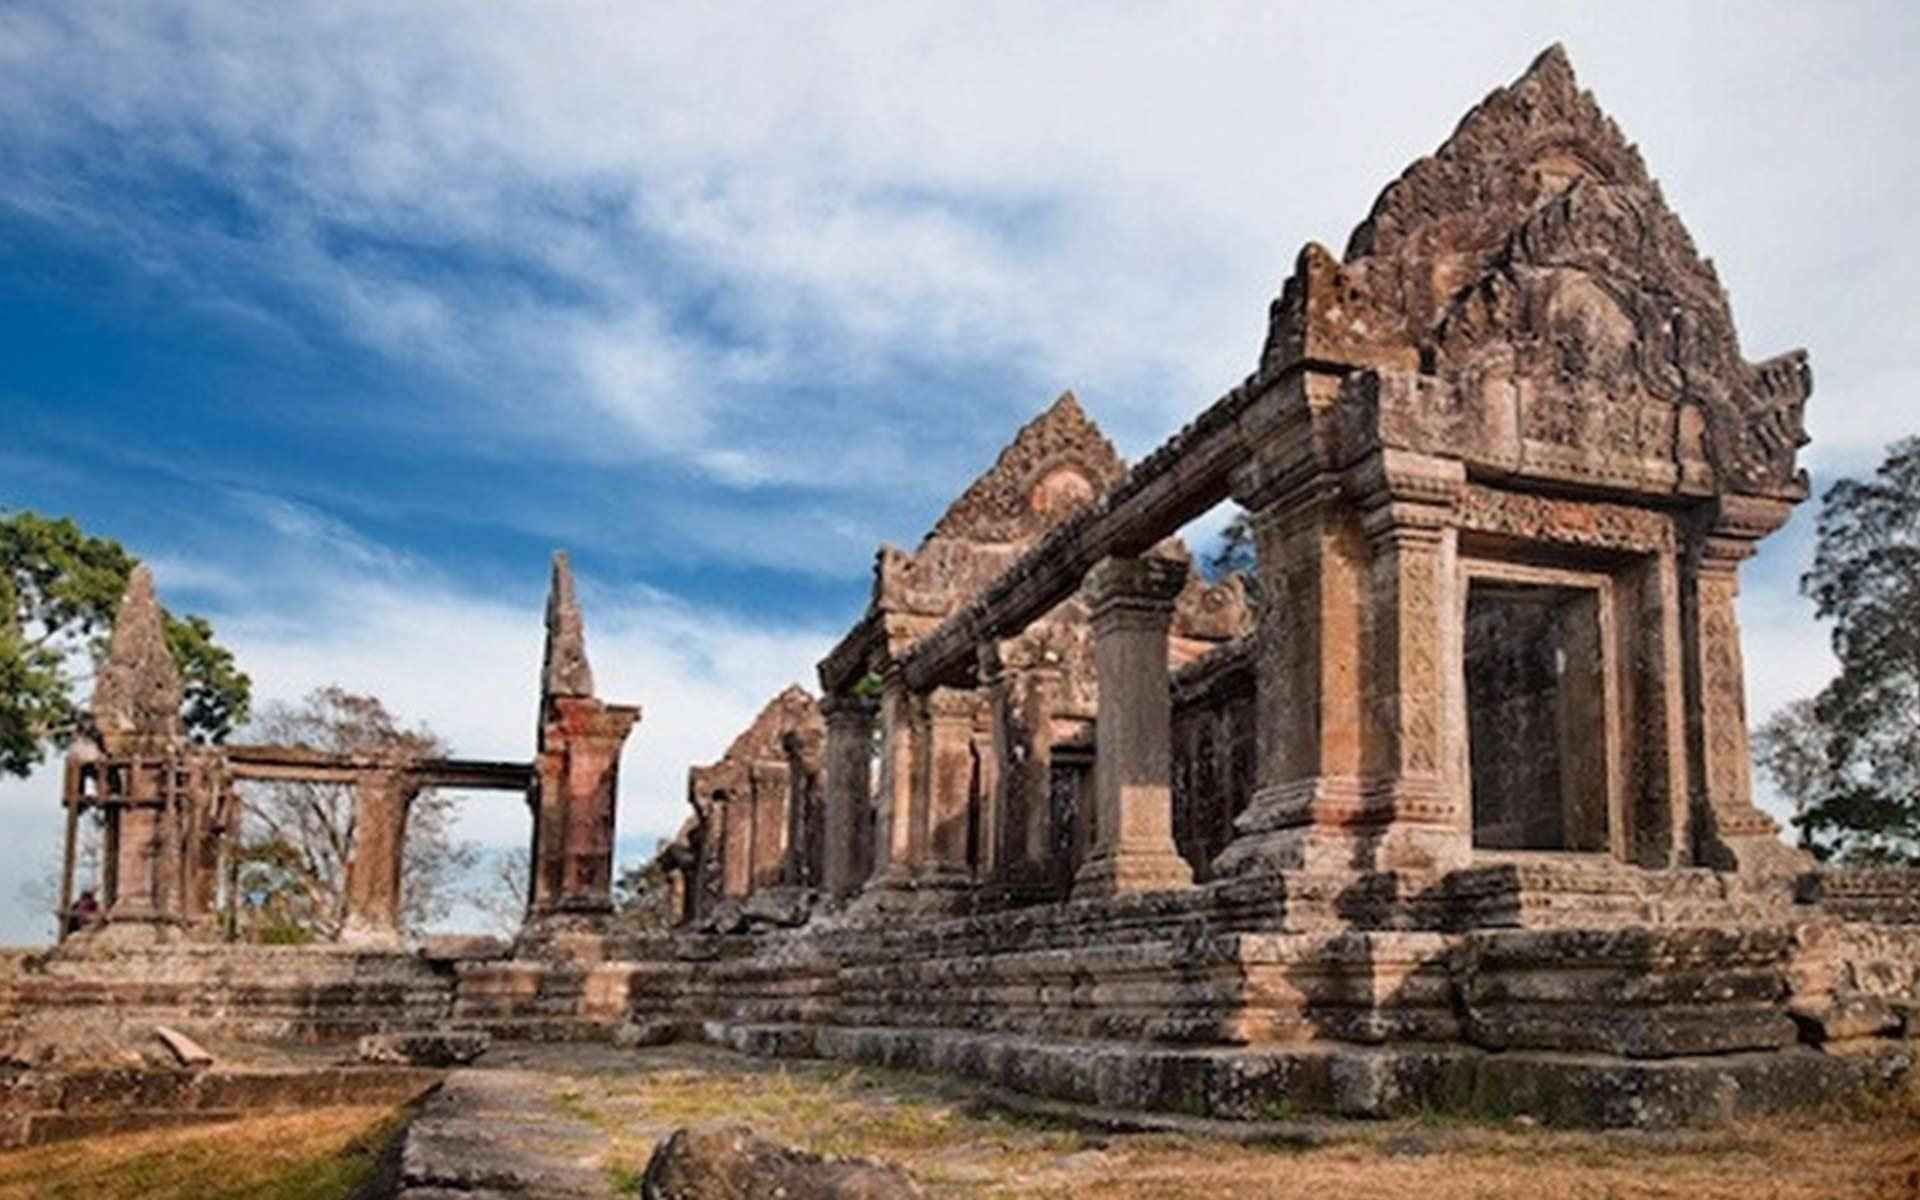 10 interesting attractions in Cambodia beside Angkor Wat